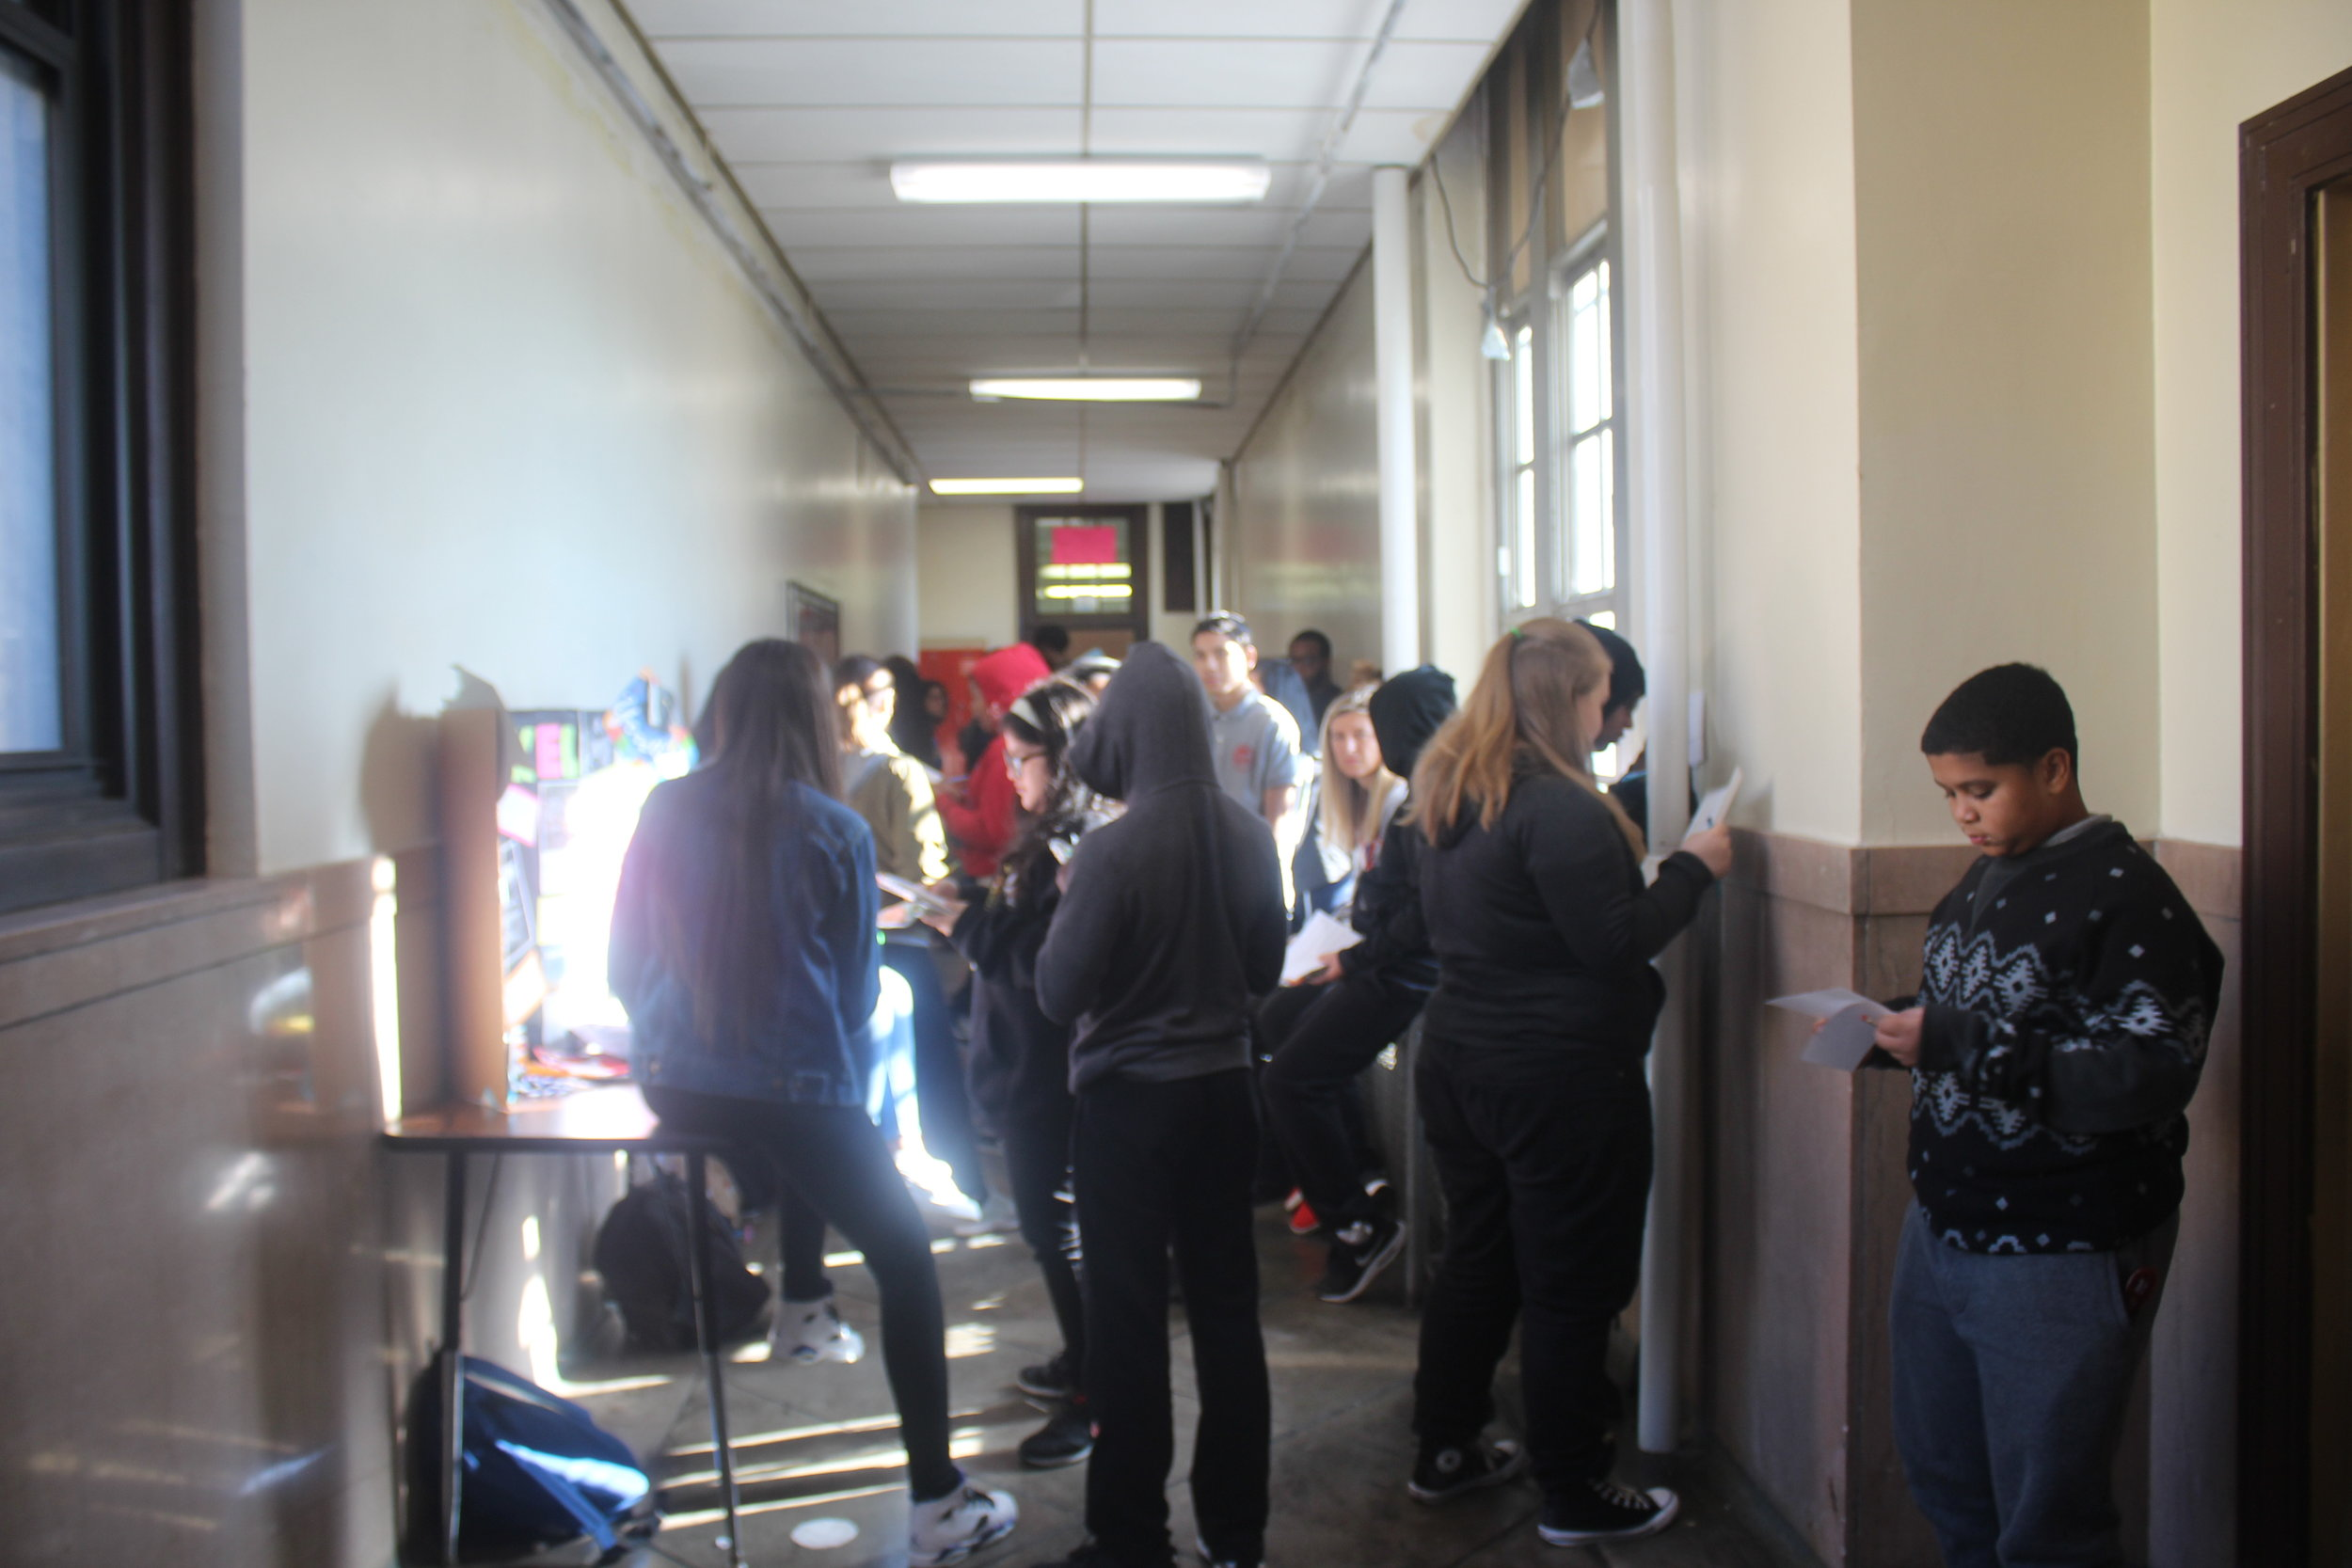 Underclassmen crowd the hallway during the Senior-run college fair.